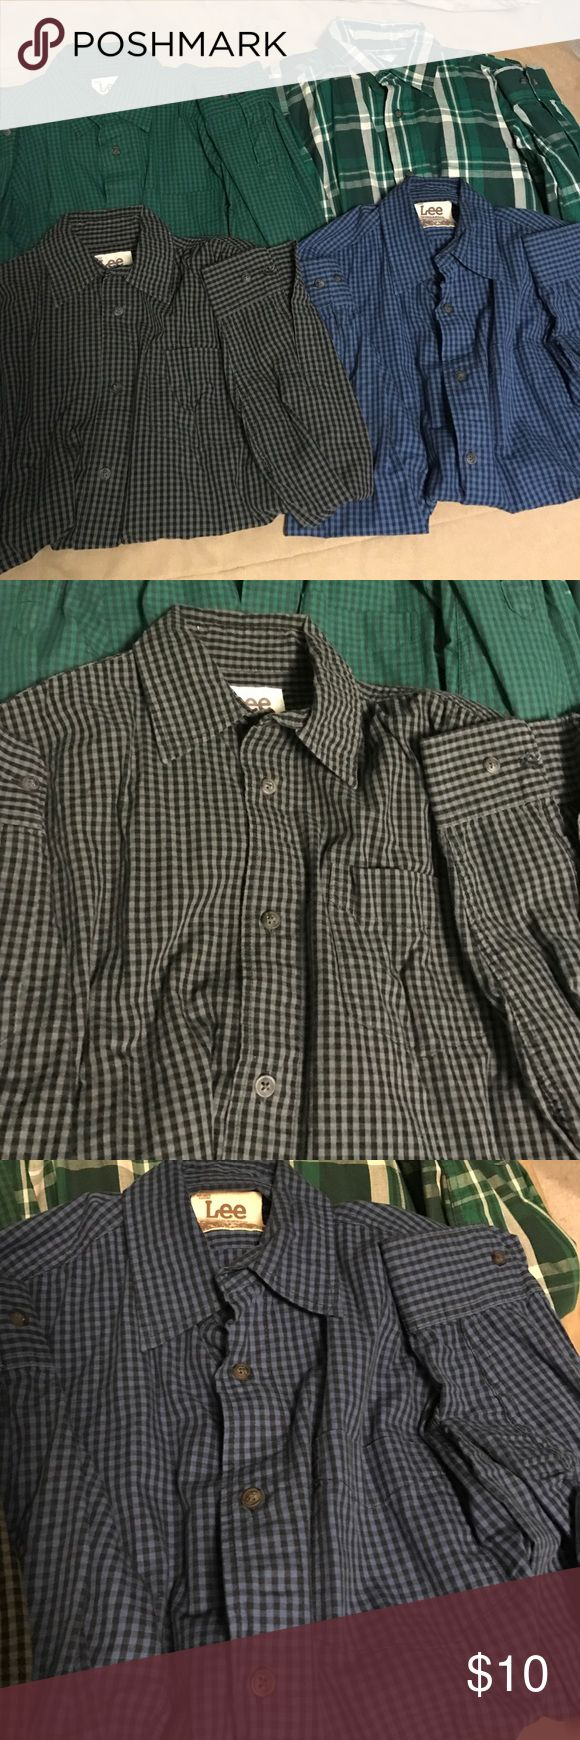 Lee Dungarees Men's Long Sleeve Button Down Shirts 4 Lee Dungarees Button Down Shirts, Men size  Small. Good condition, only worn a couple times. Lee Shirts Casual Button Down Shirts